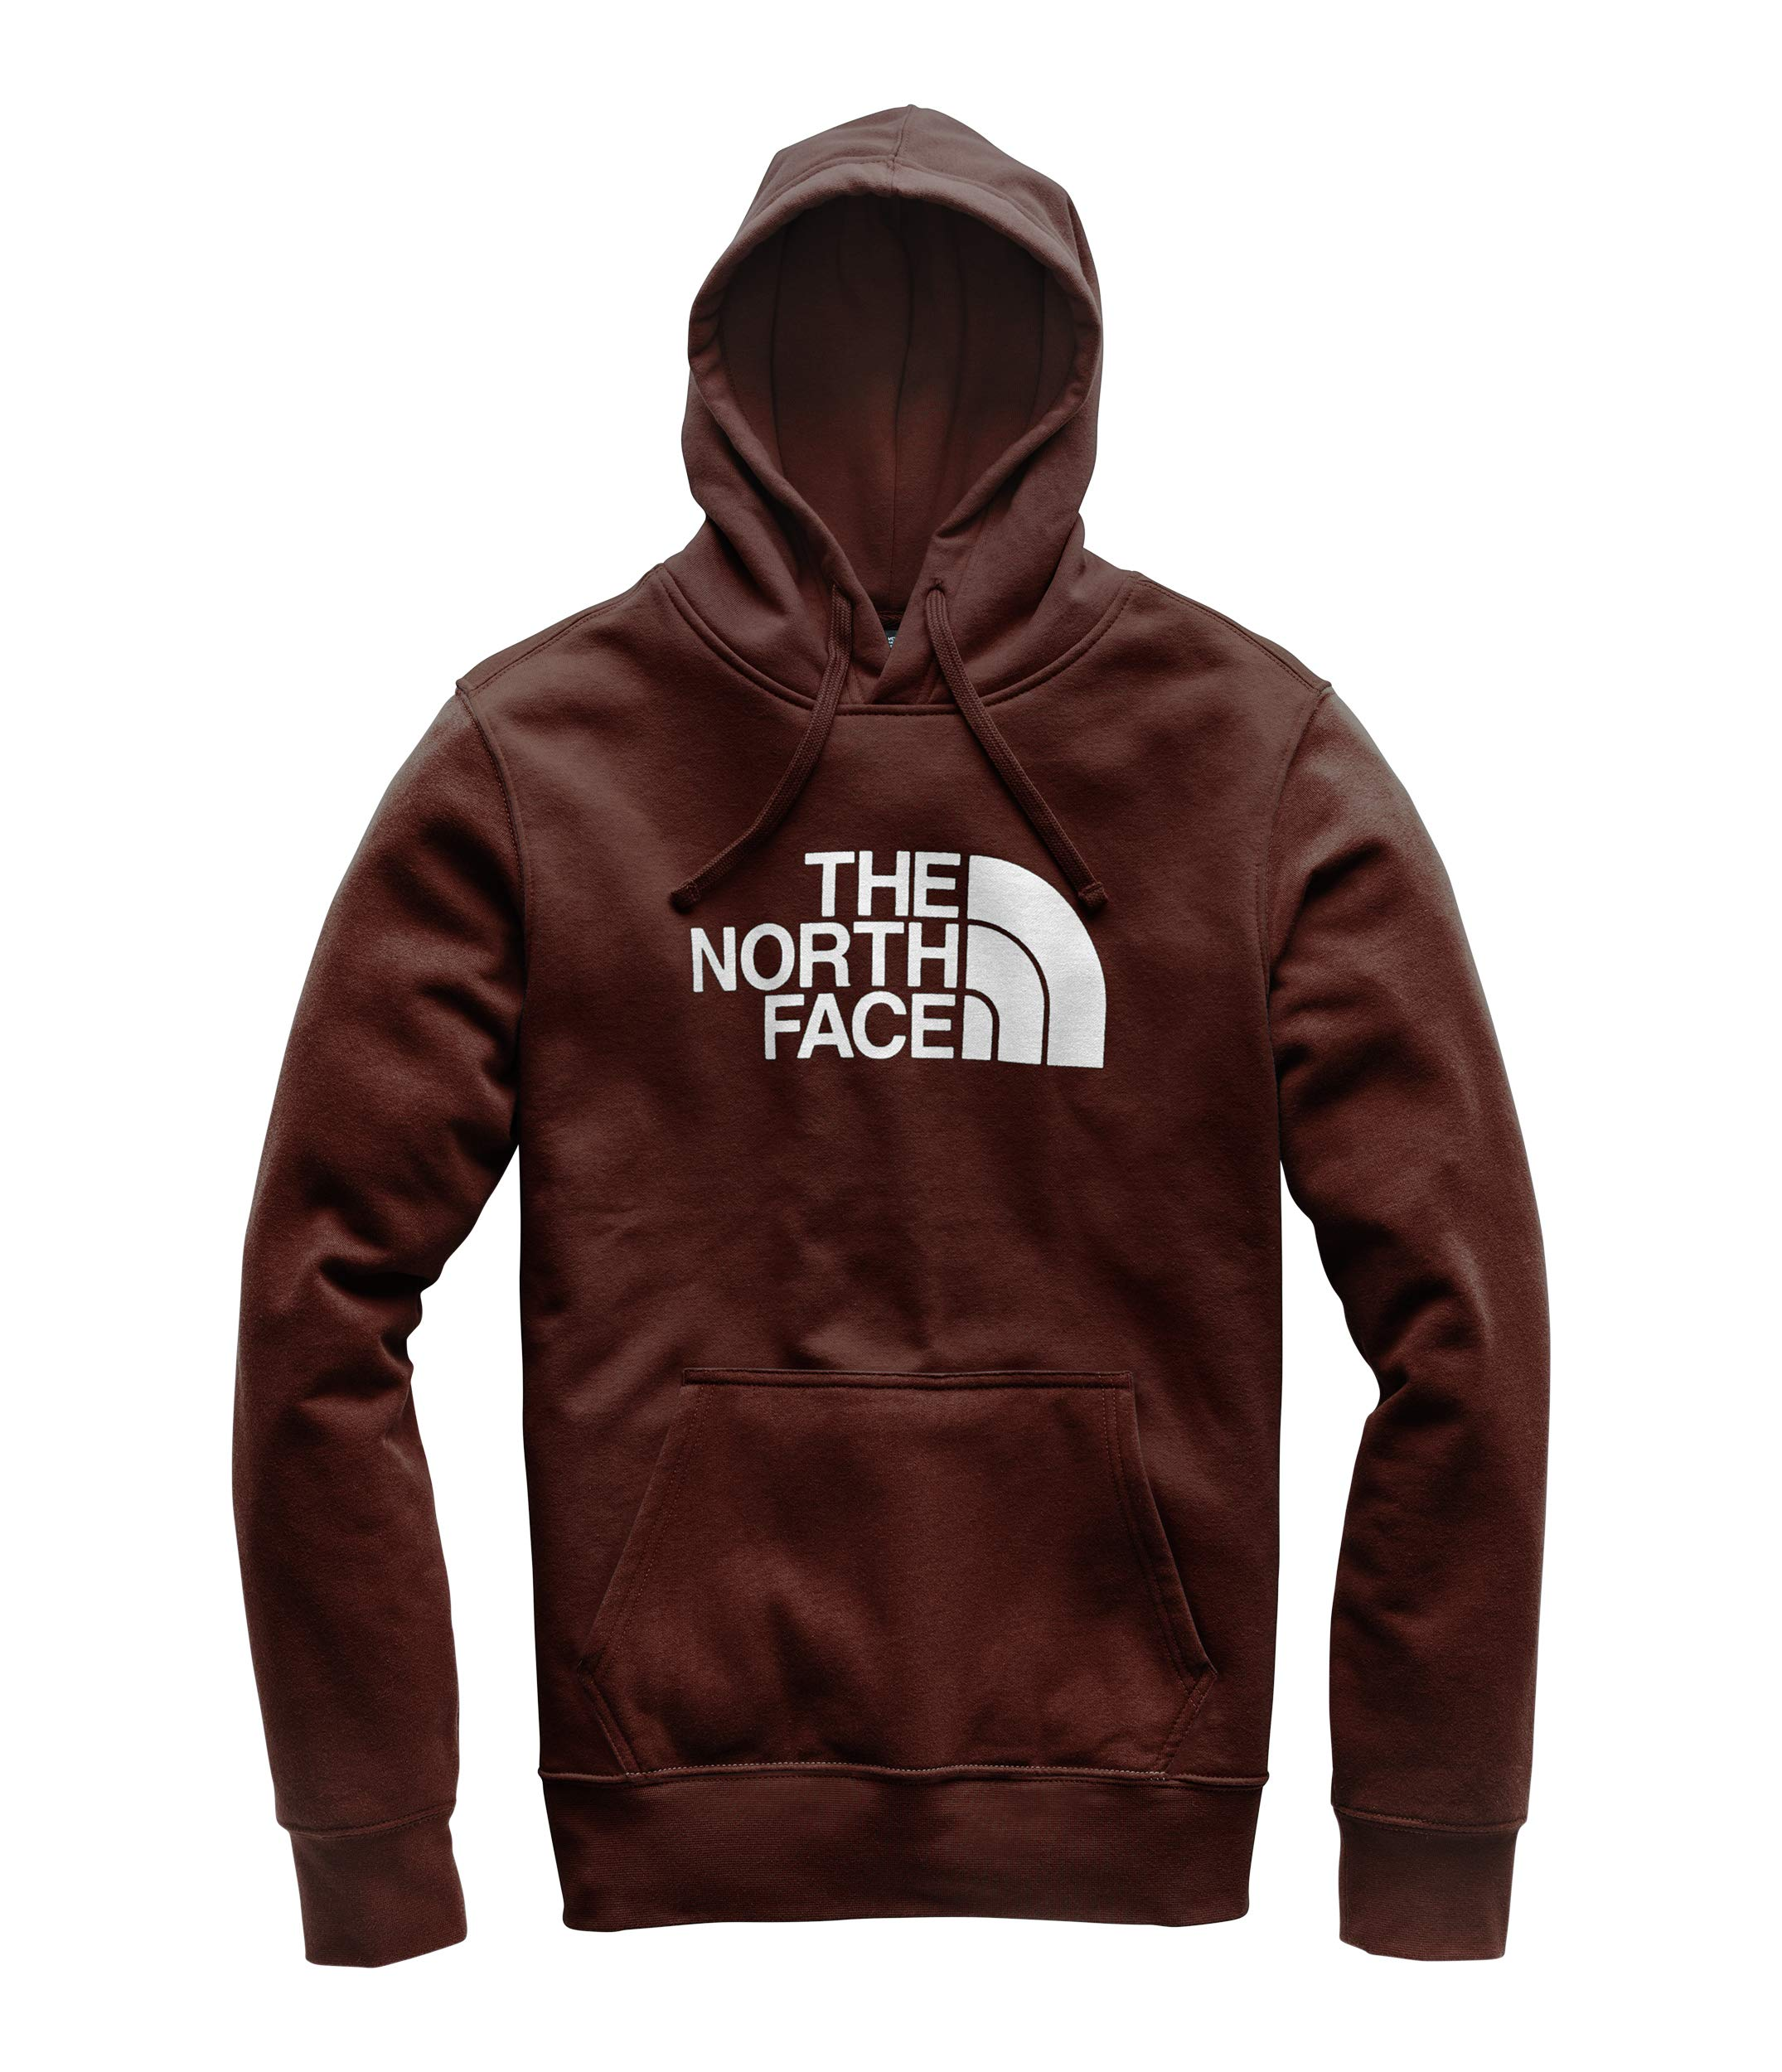 92ad49ff2 The North Face Men's Half Dome Pullover Hoodie - Sequoia Red & TNF White -  XL